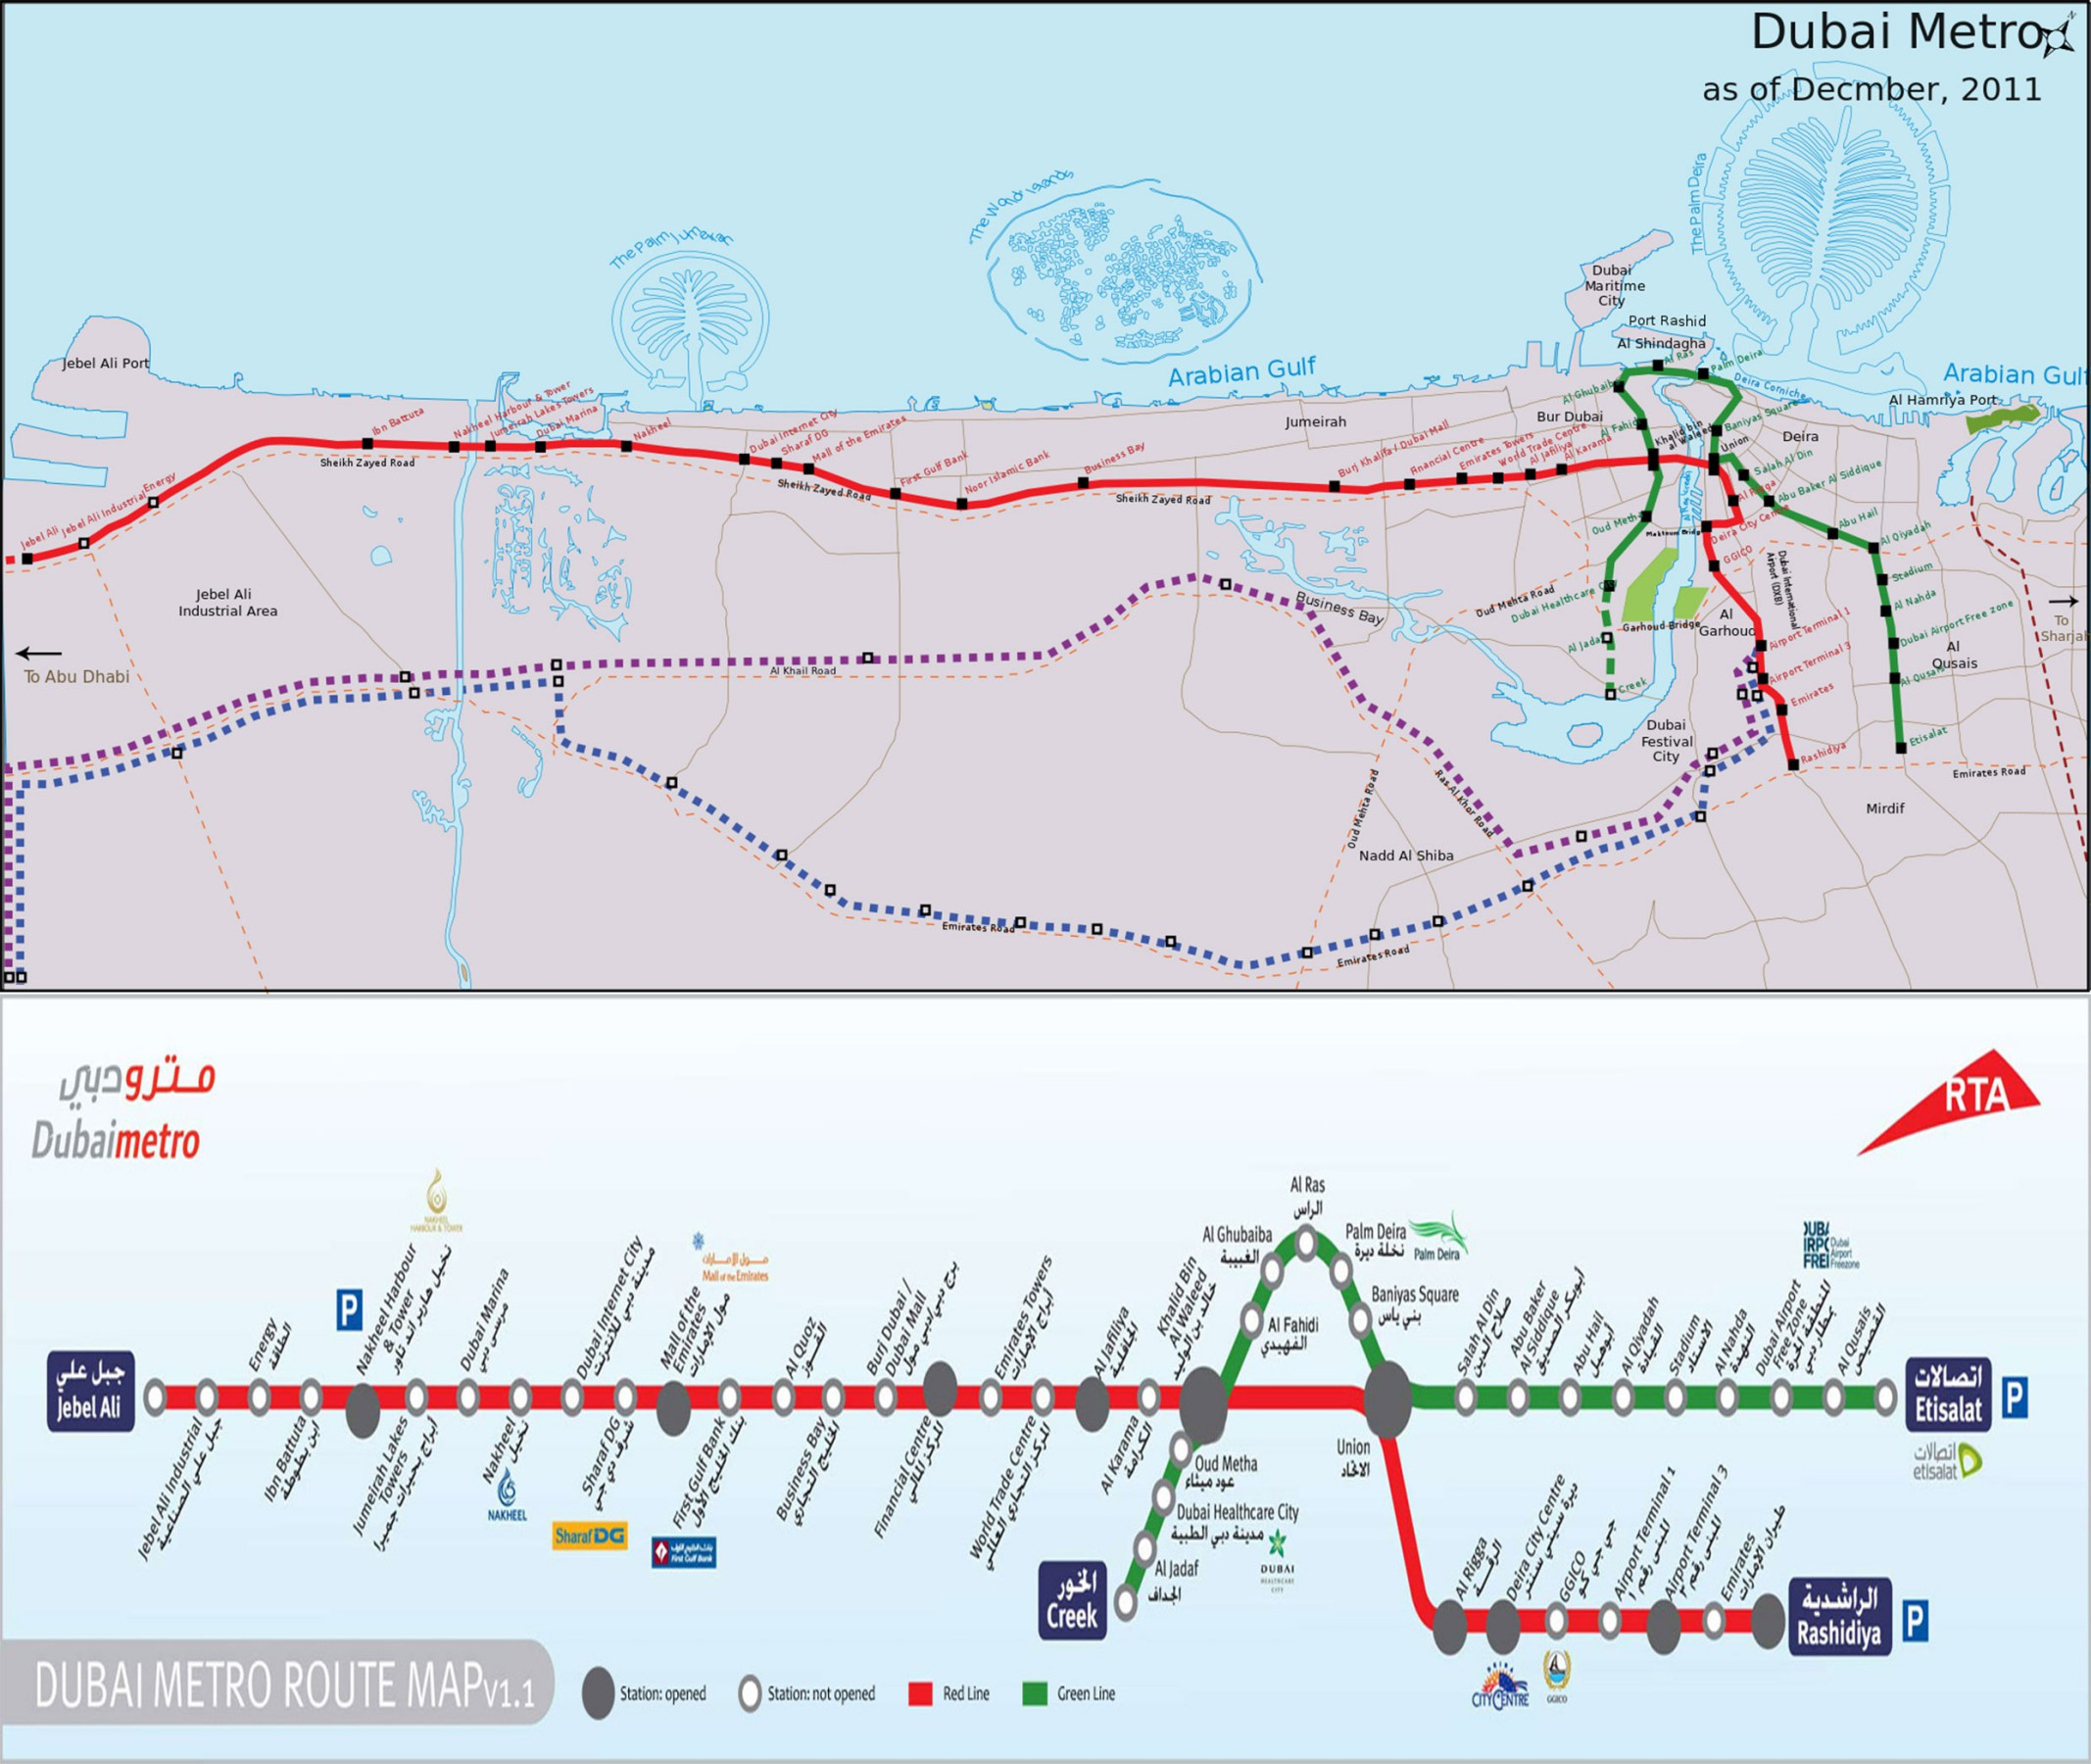 Dubai-Metro-Route-Map - Beautiful Global